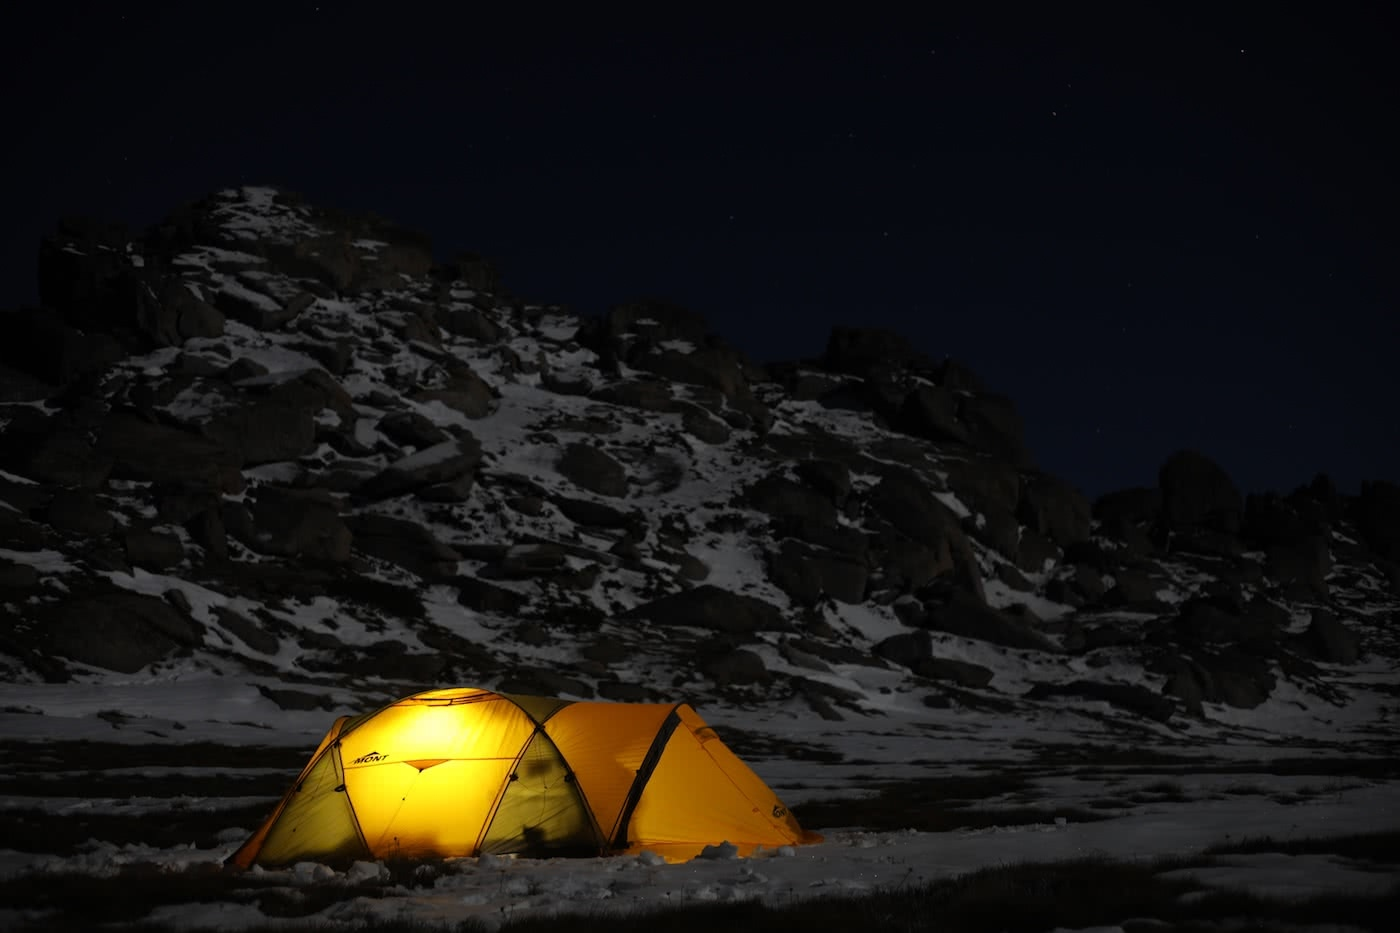 Explorers guide to hiking with a camera, photo by Mattie Gould snow camping, mont epoch tent, astrophotography